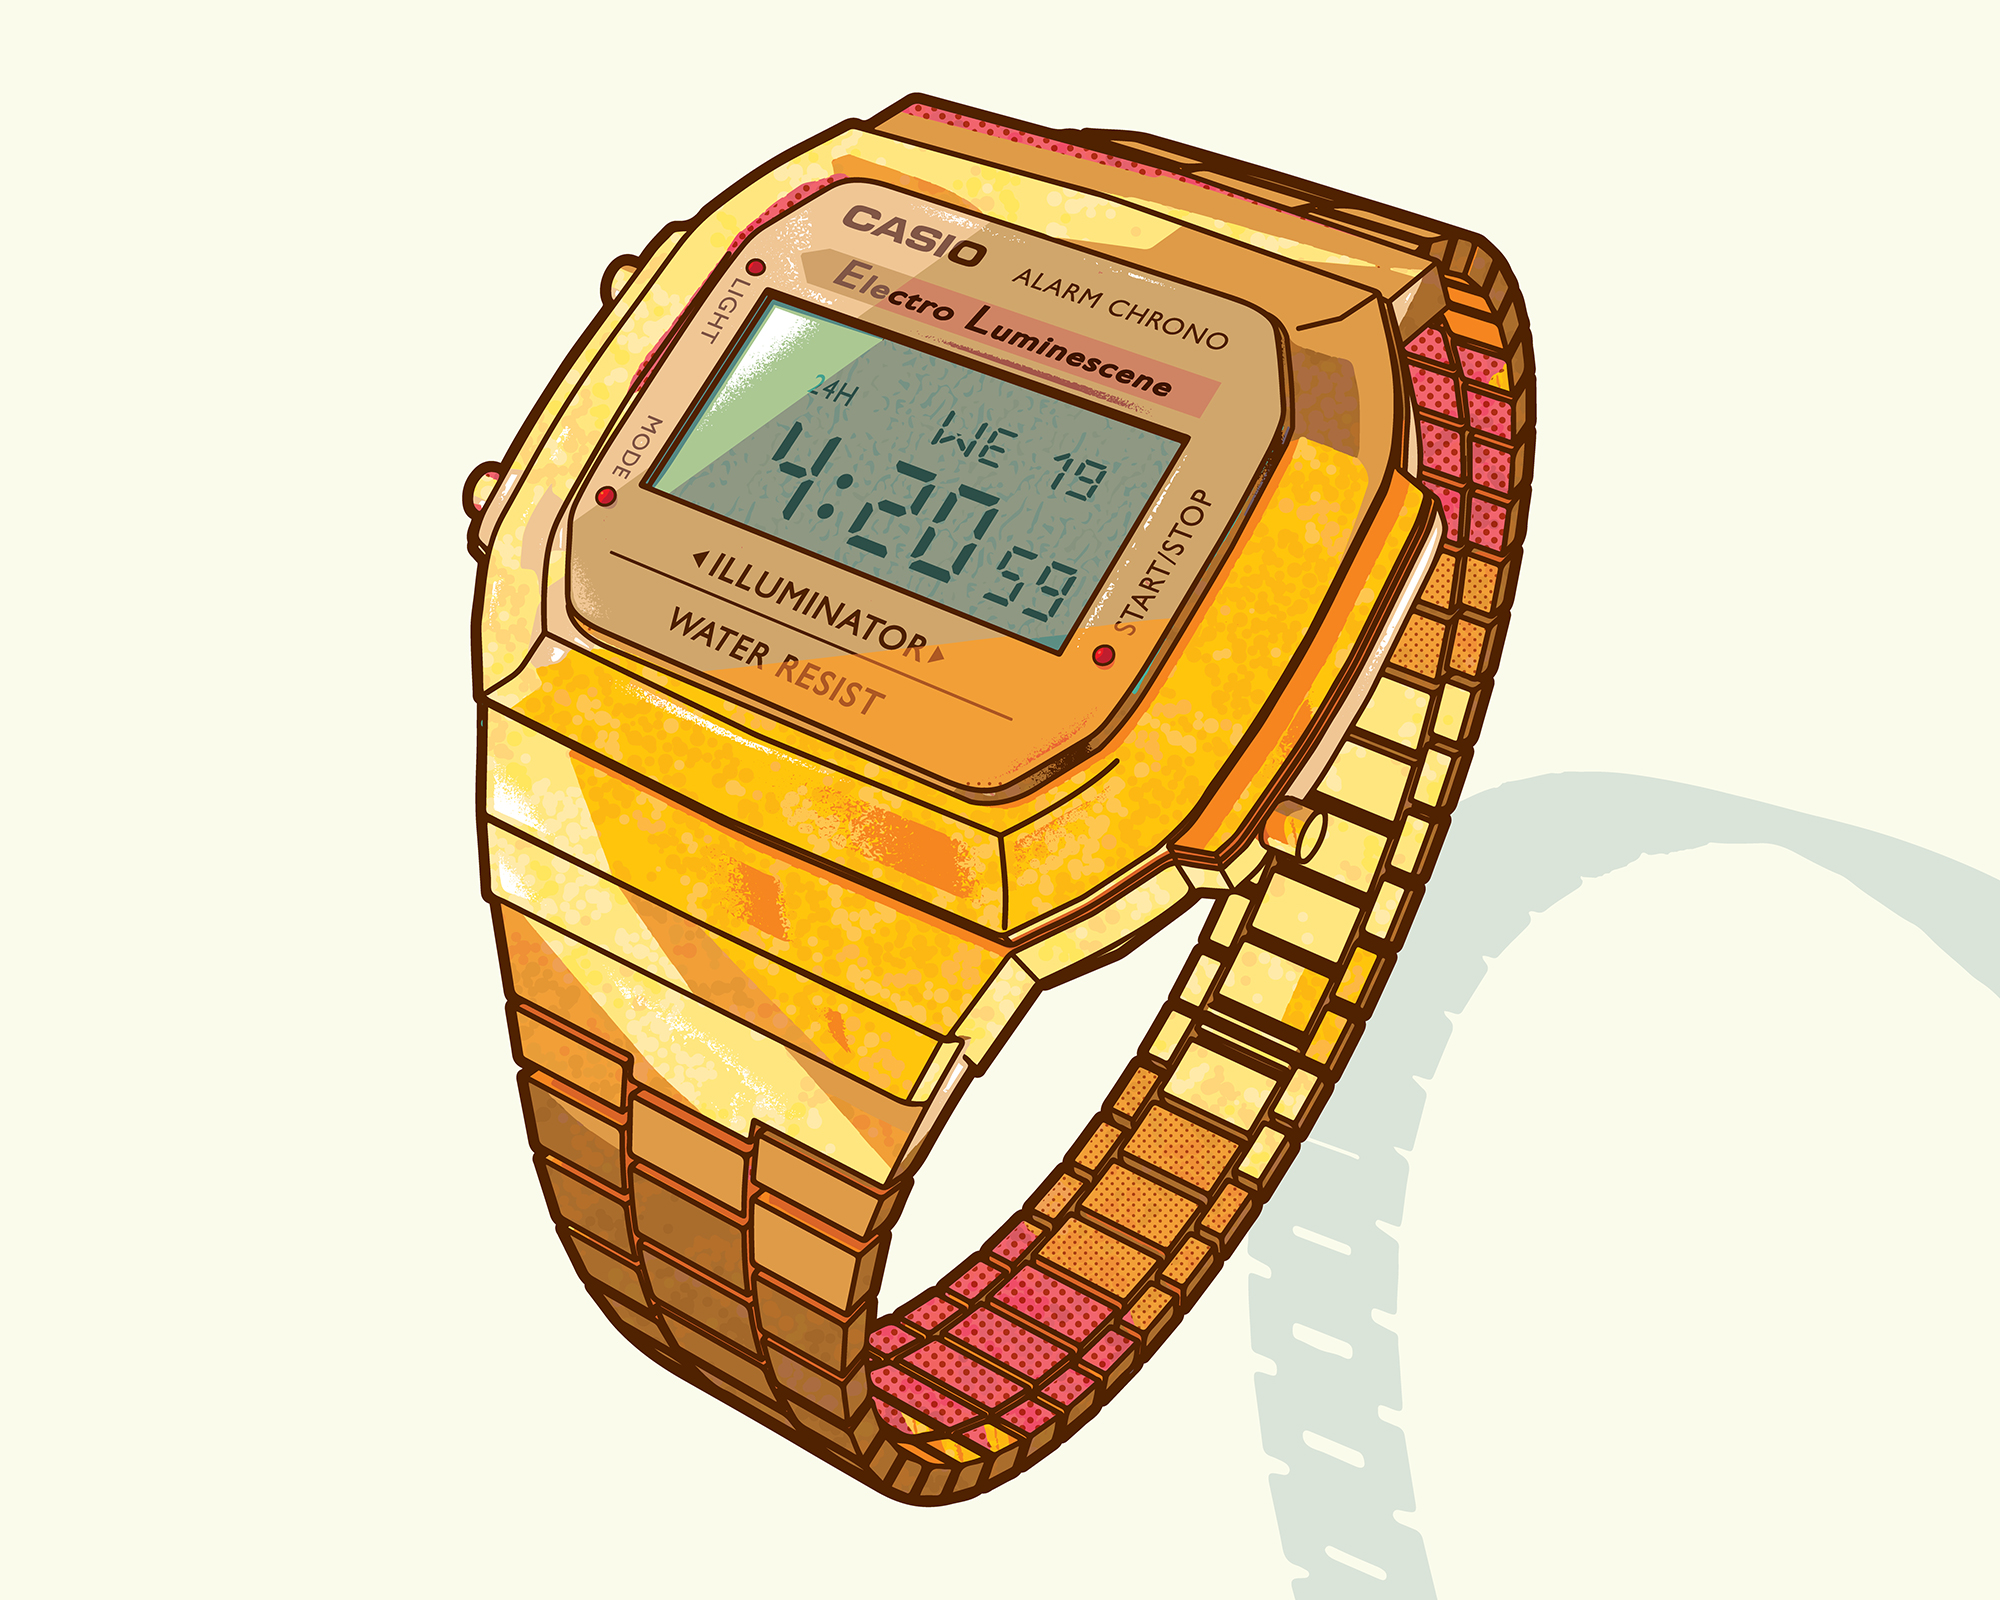 Casio-final-done.jpg